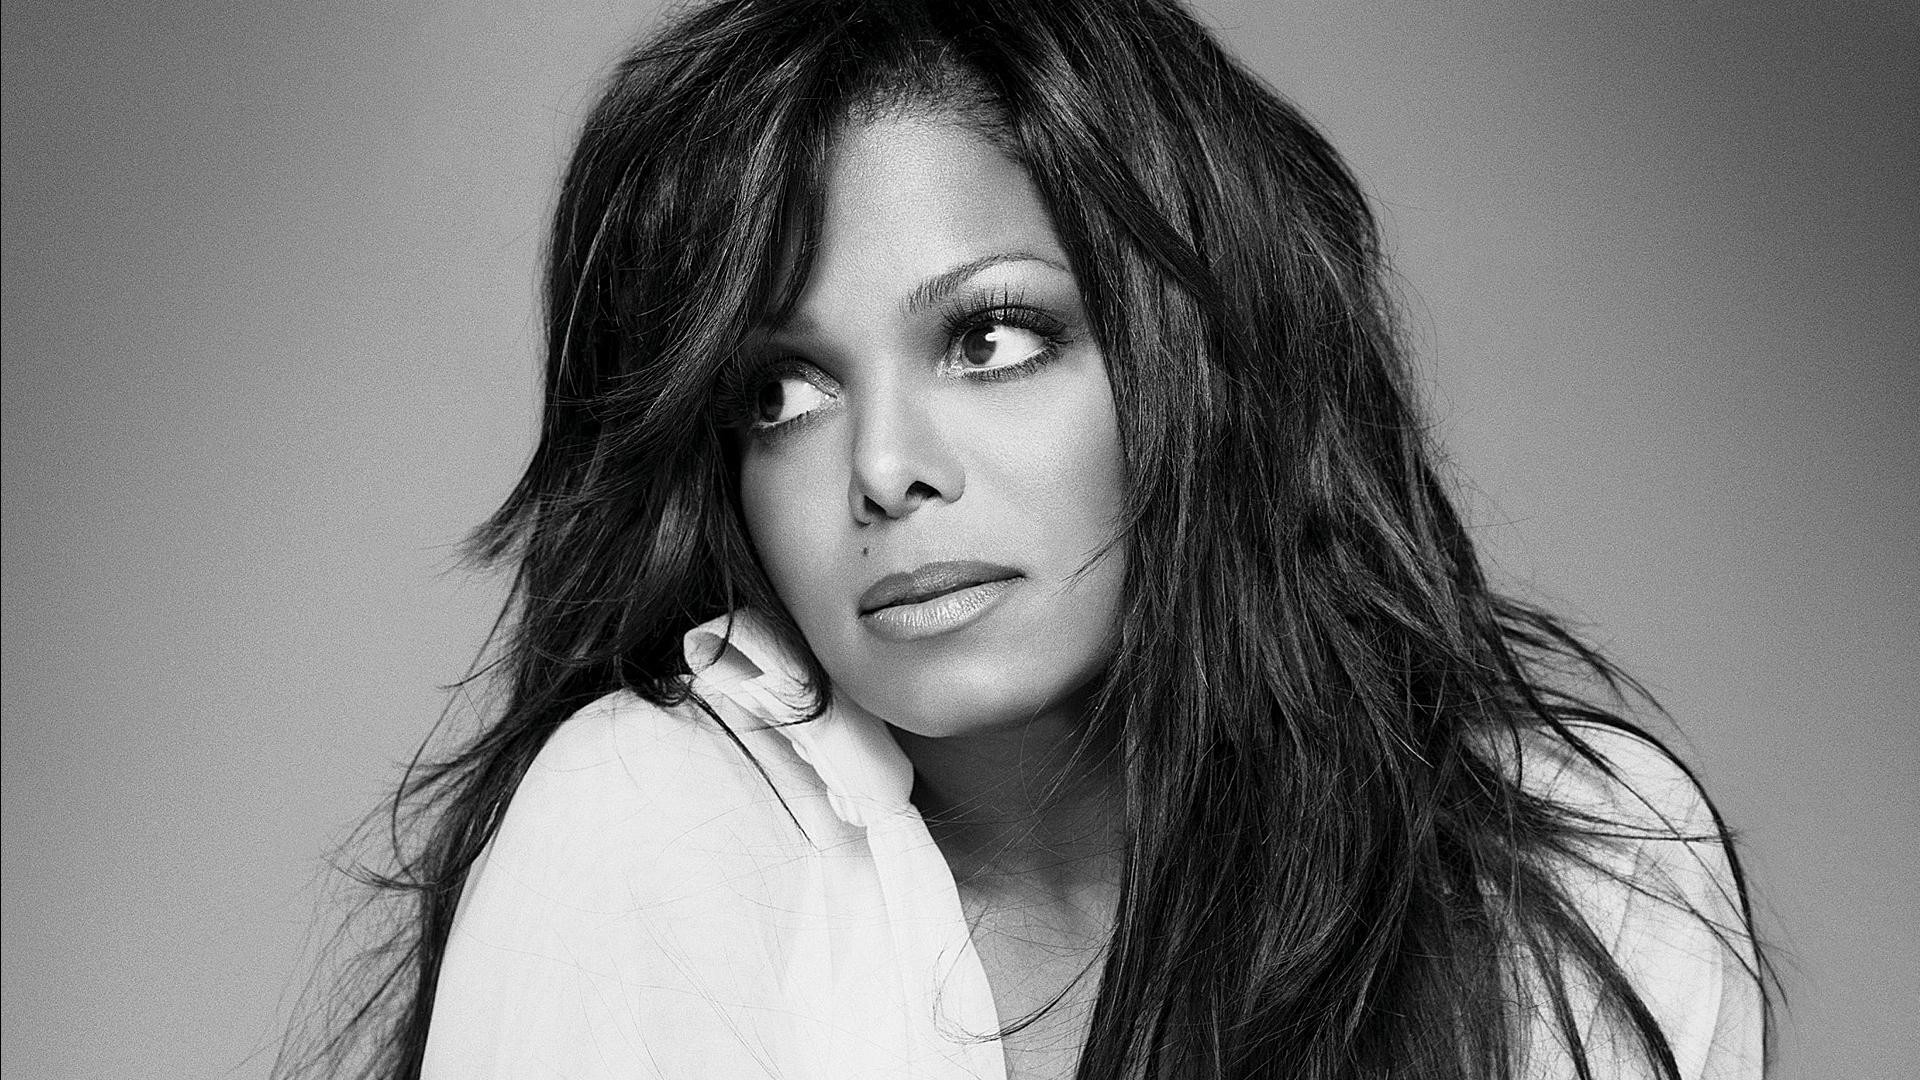 1920x1080 Monochrome Janet Jackson Wallpaper 60101